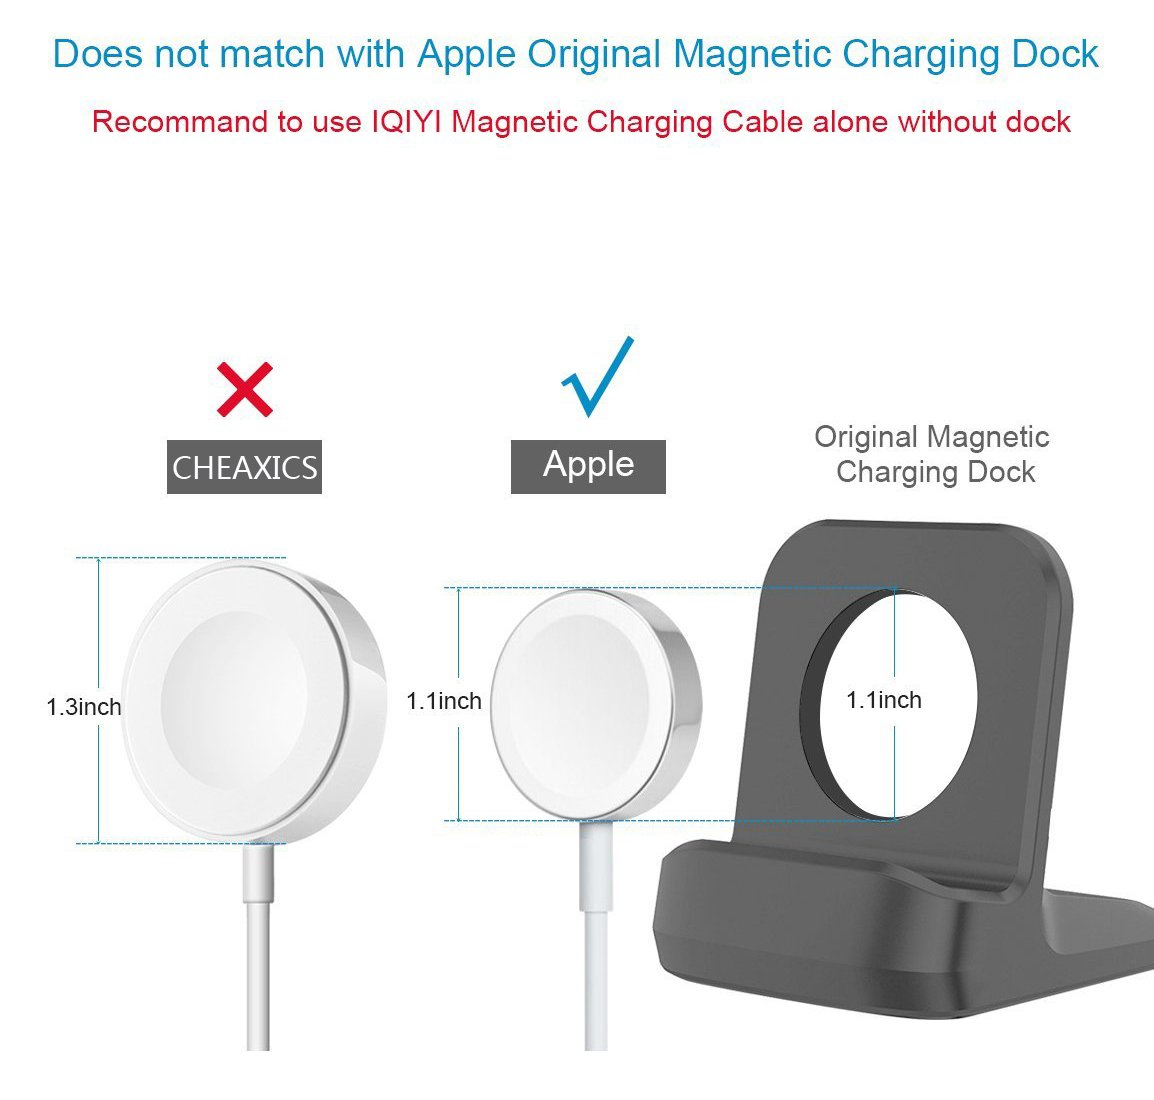 Apple Watch Charger Cable, CHEAXICS iwatch Magnetic Charging Cable Portable Cord 3.3 feet/1meter for iWatch 38mm & 42mm, Apple Watch Series 1/2/3 (silver 3.3ft) by CHEAXICS (Image #5)